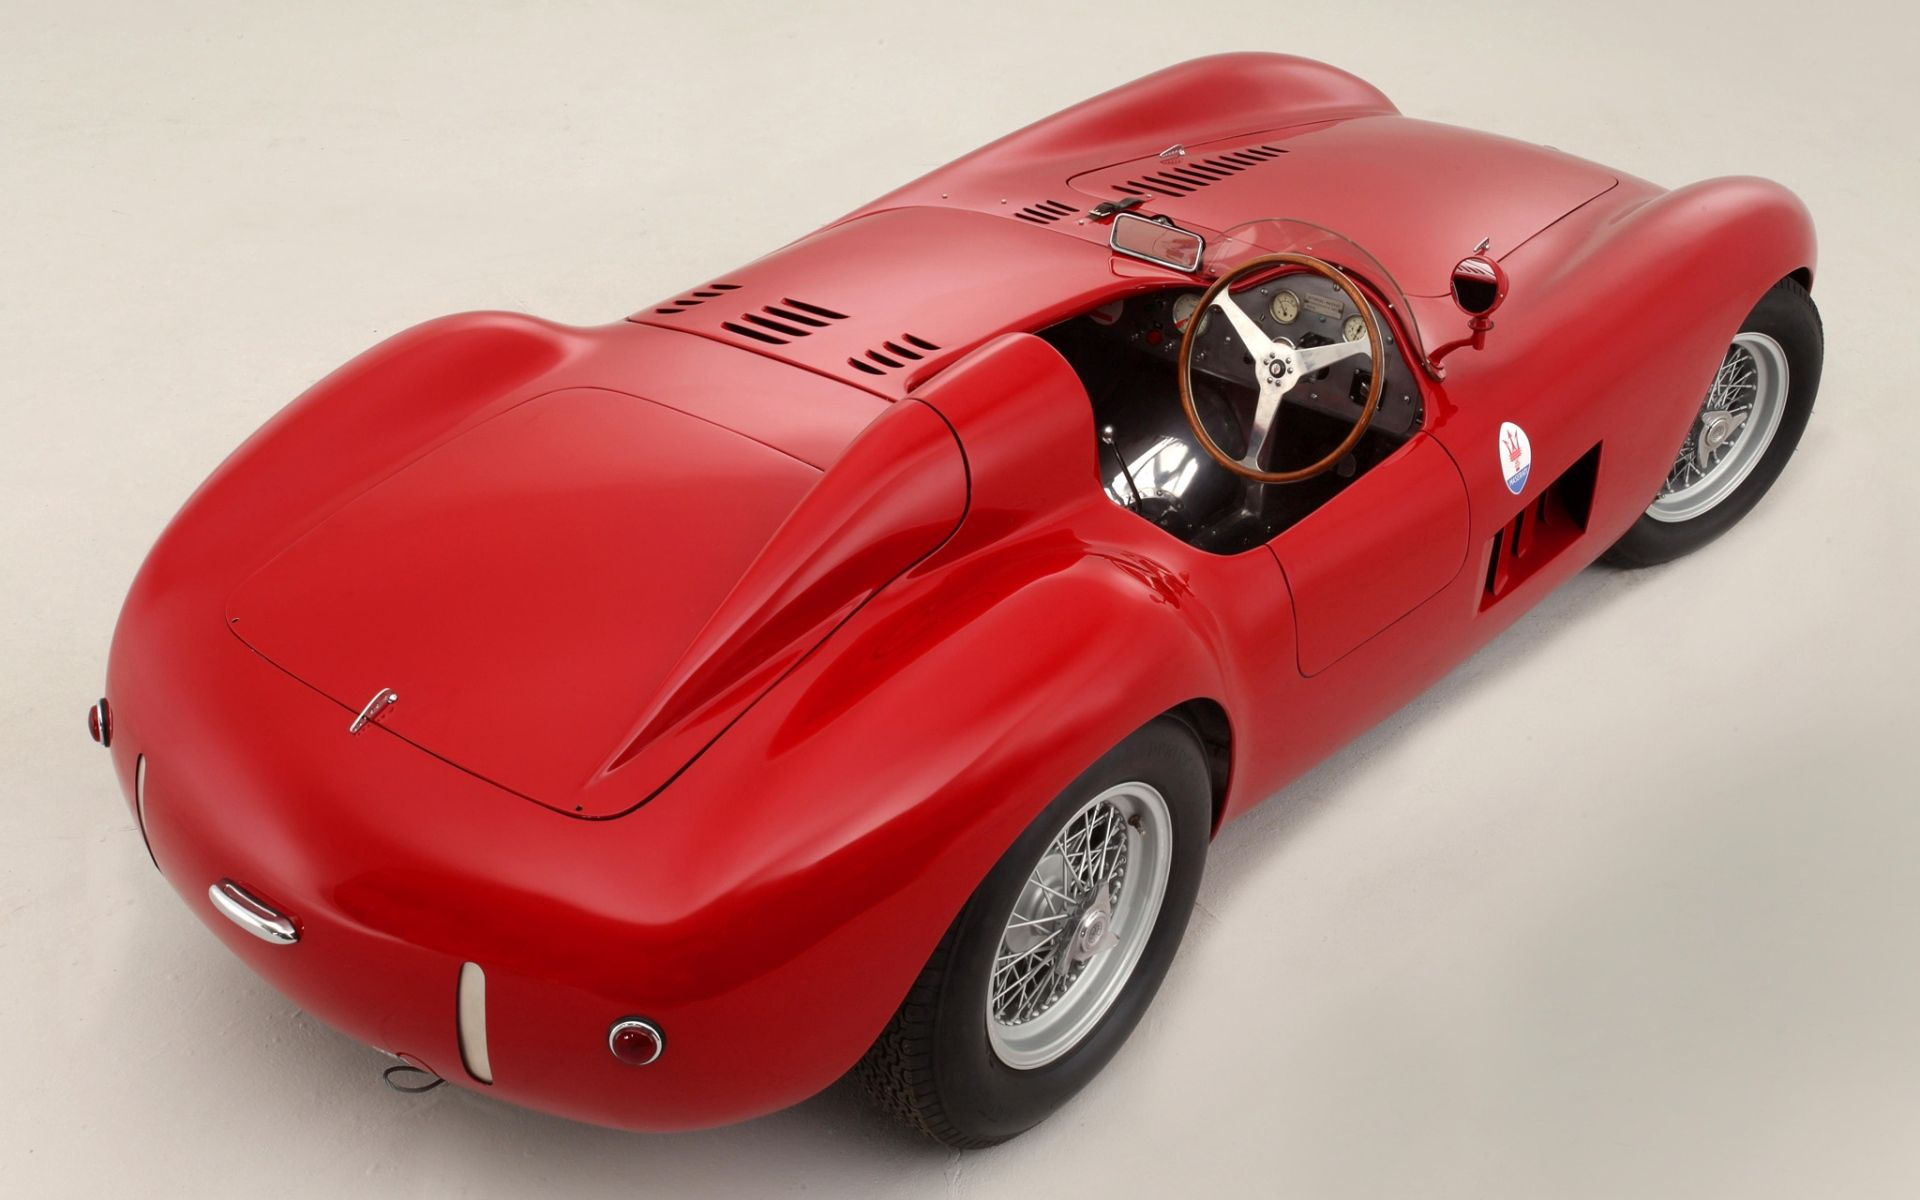 152449 download wallpaper Cars, Maserati, 300S, 1956, Back View, Rear View screensavers and pictures for free